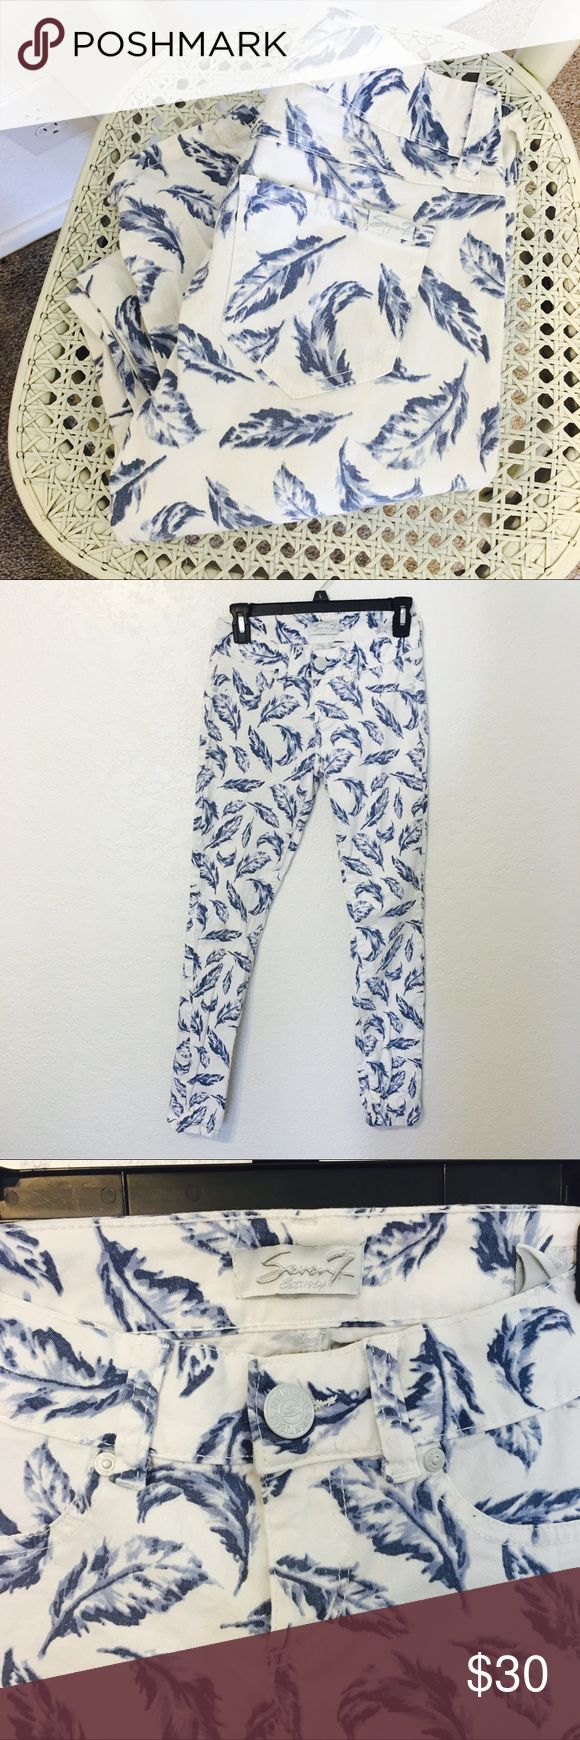 Seven7 leaf print jeans RARE white seven7 jeans with blue feather print. So cute and perfect for summer and transitioning to fall. Size 2 Seven7 Jeans